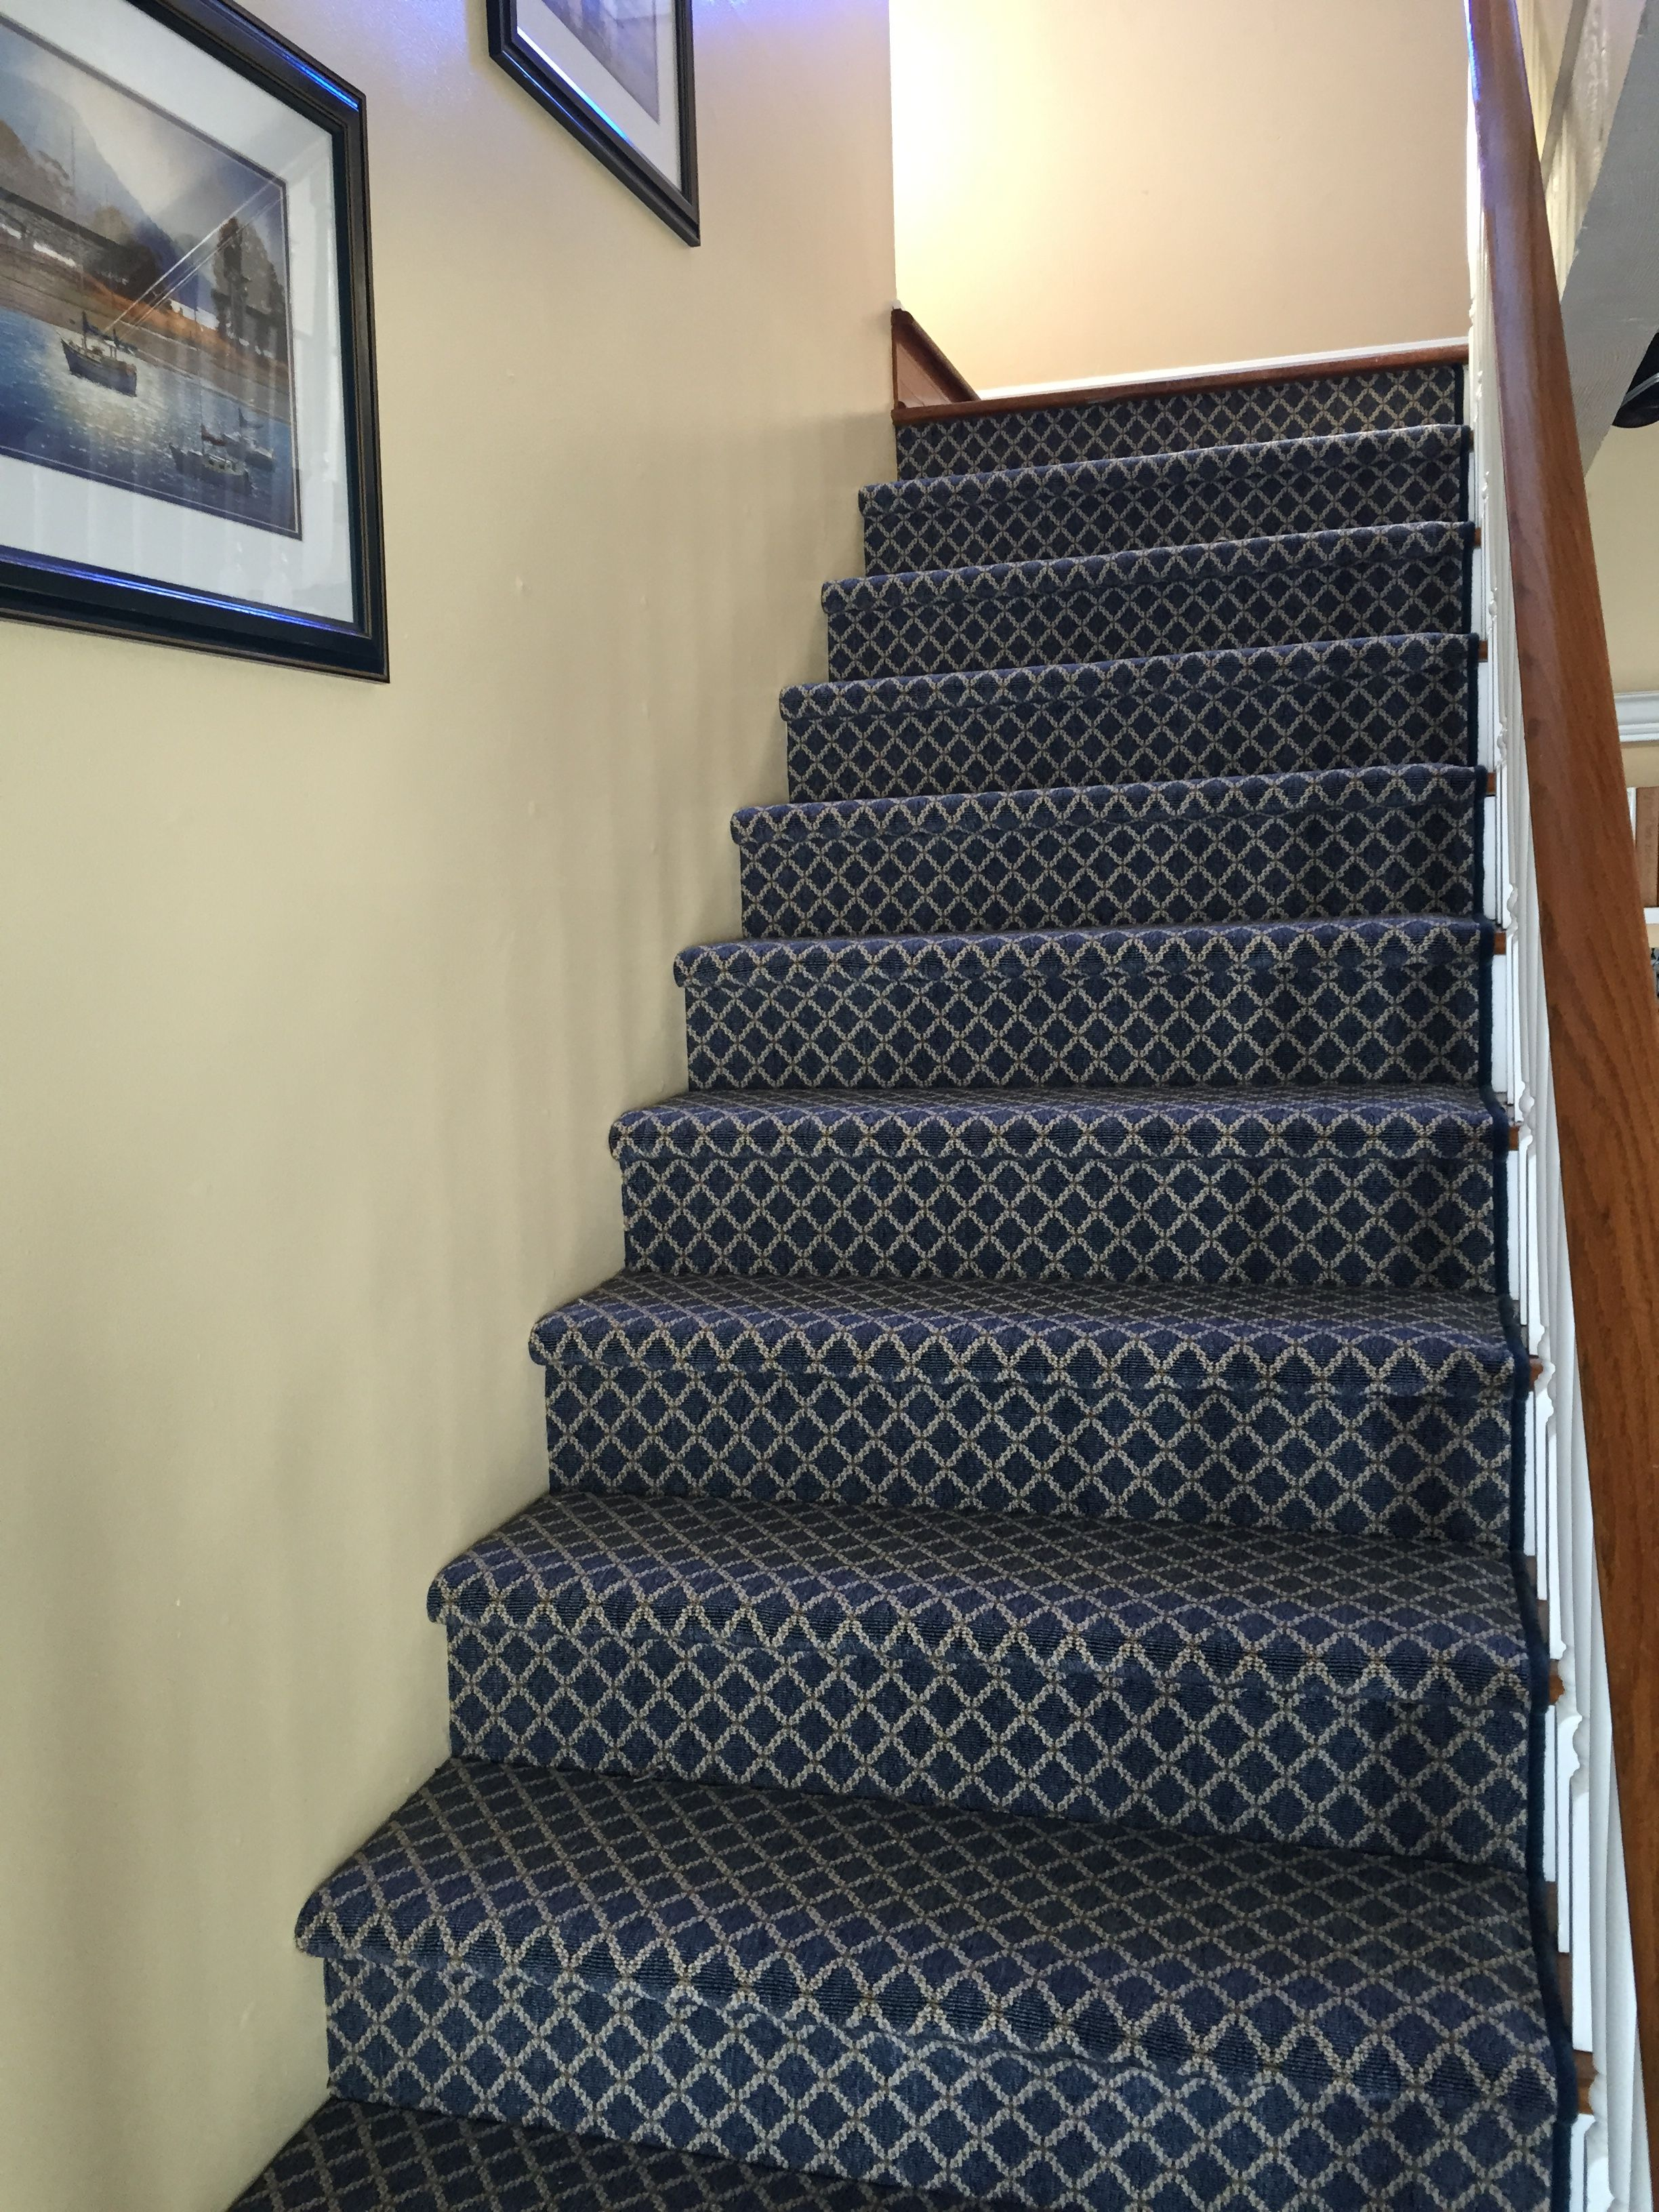 Hemphill S Fine Rugs And Quality Flooring In Orange County | Outdoor Carpet For Steps | Front Entrance | Marine | Navy Pattern | Rubber | Diy